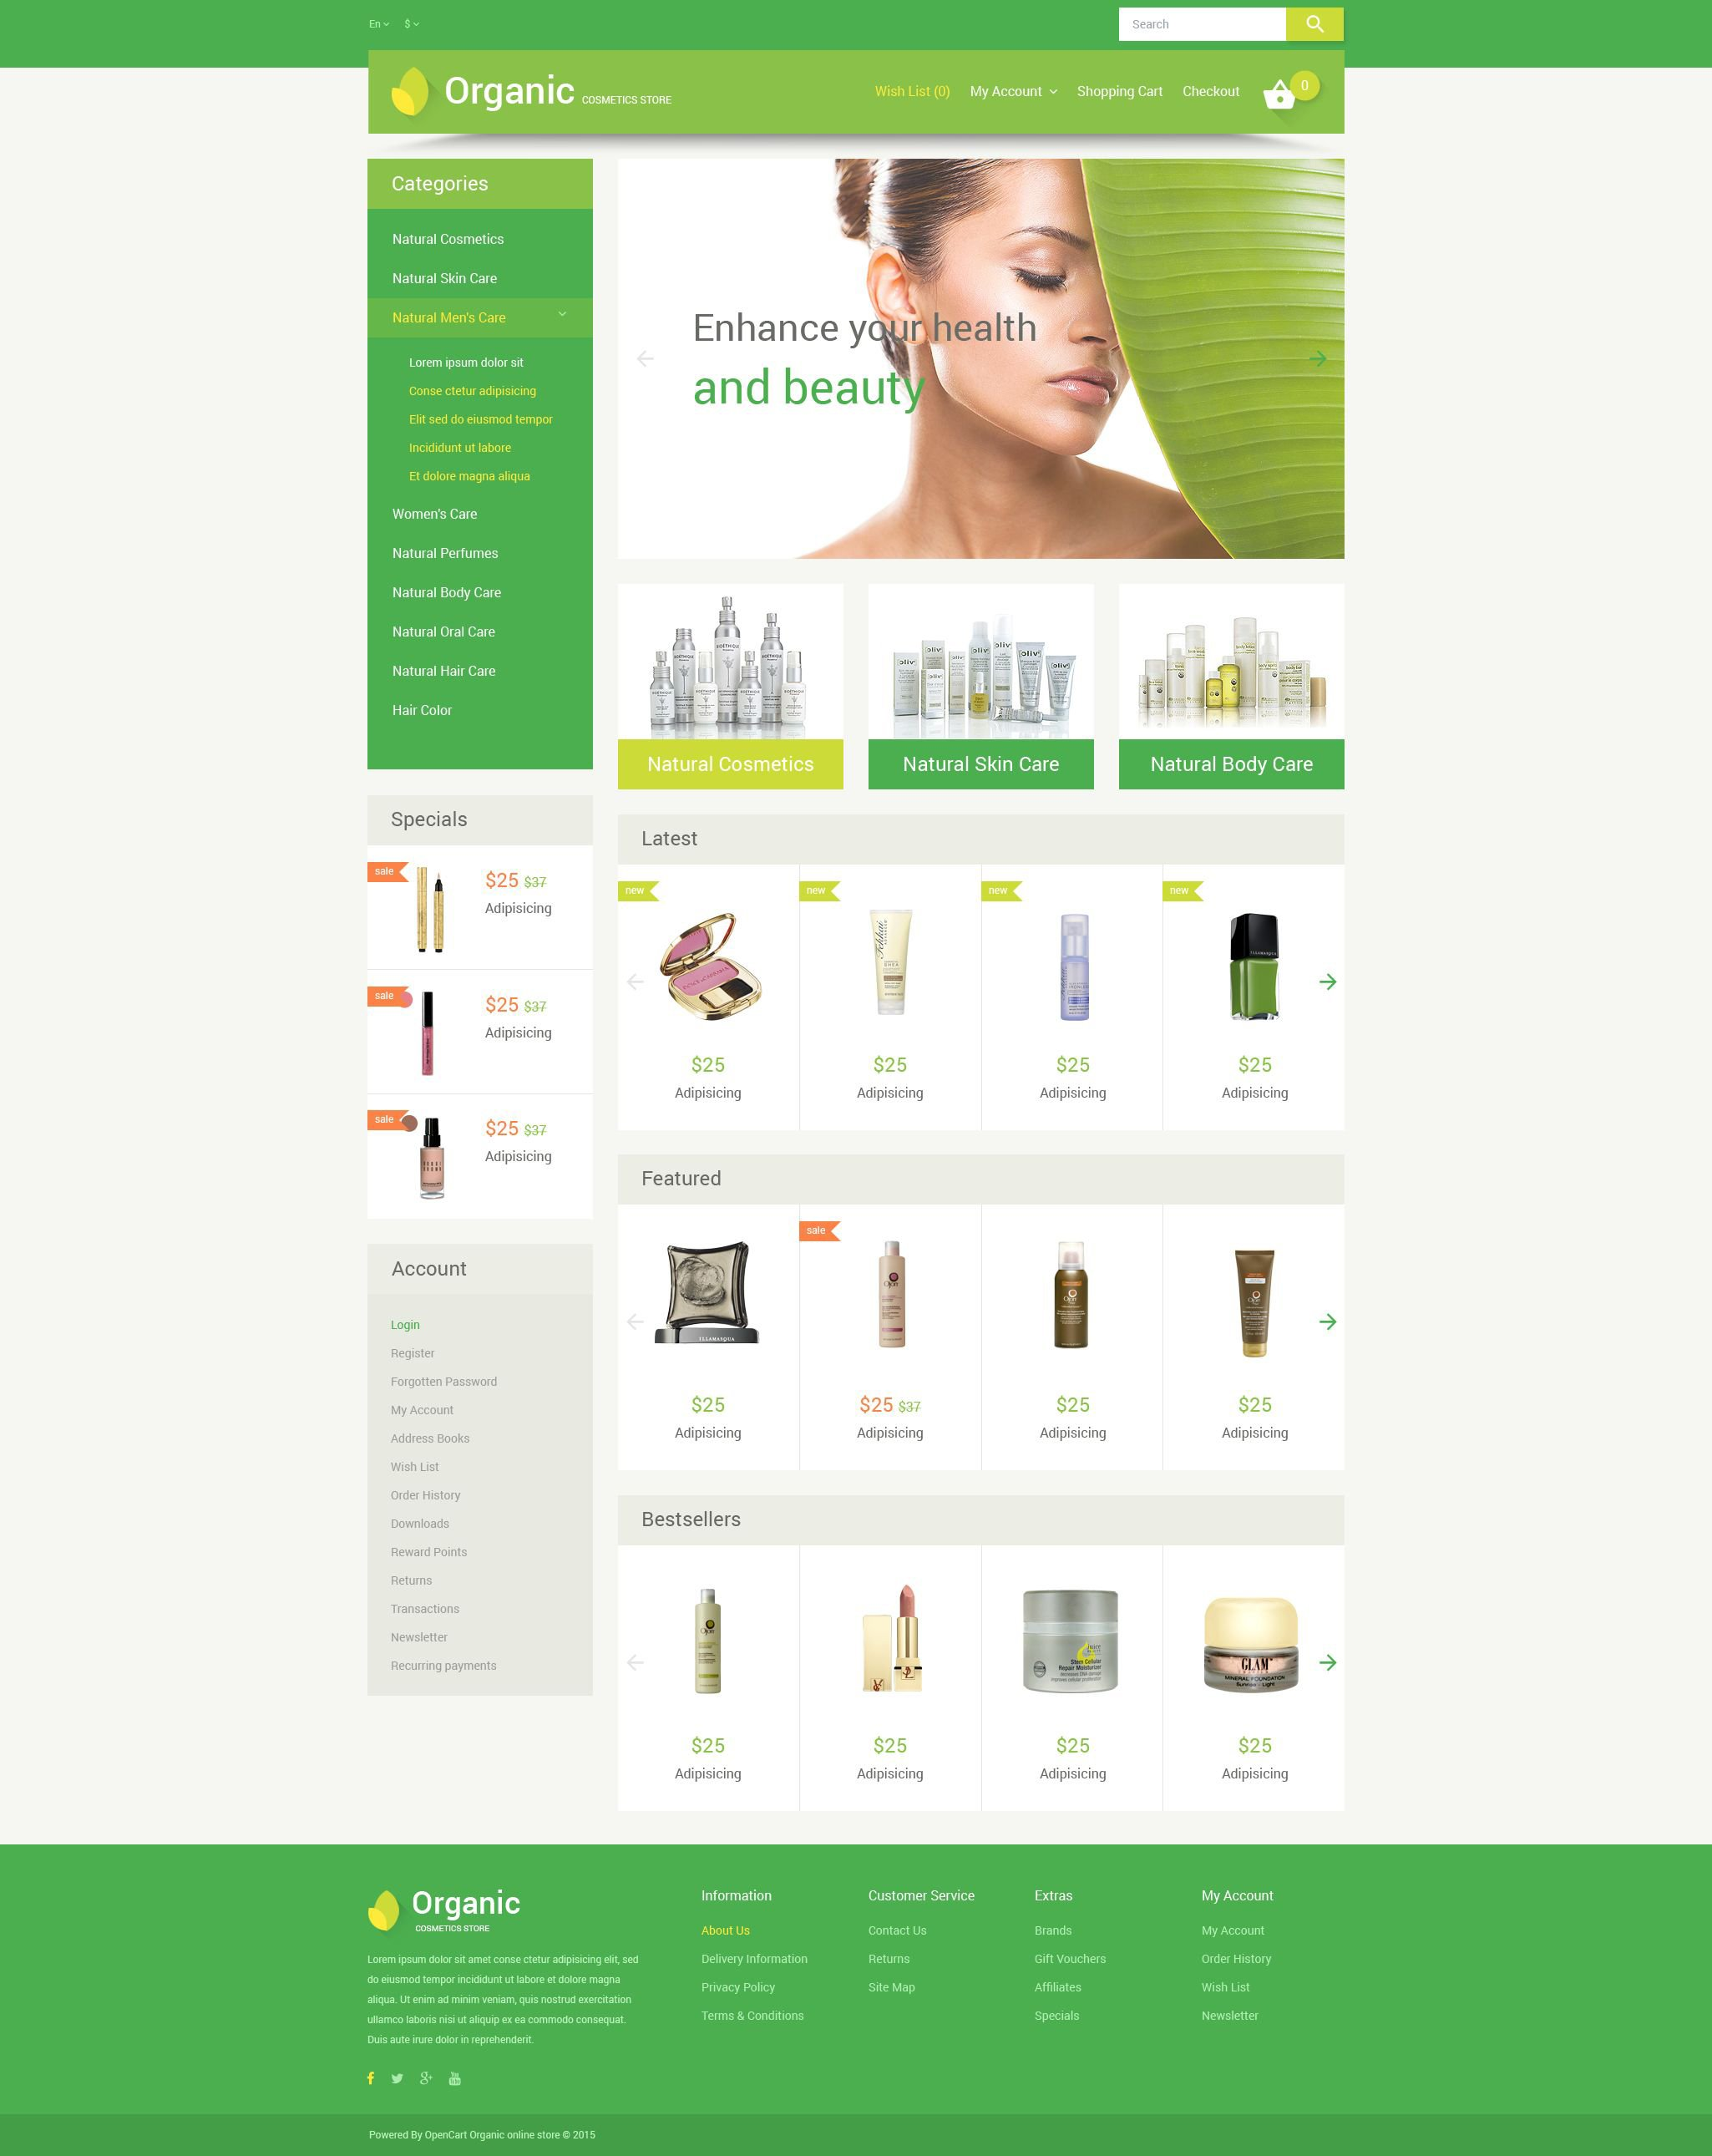 The Organic Cosmetics Store OpenCart Design 54591, one of the best OpenCart templates of its kind (beauty, most popular), also known as organic cosmetics store OpenCart template, beauty OpenCart template, fashion OpenCart template, health care OpenCart template, women solution OpenCart template, service OpenCart template, catalogue OpenCart template, product OpenCart template, gift OpenCart template, skincare OpenCart template, hair care OpenCart template, style OpenCart template, cream OpenCart template, natural OpenCart template, rejuvenation OpenCart template, damping OpenCart template, lifting OpenCart template, peeling OpenCart template, specials OpenCart template, lipstick OpenCart template, mascara OpenCart template, nail OpenCart template, polish OpenCart template, shampoo OpenCart template, body OpenCart template, milk OpenCart template, lotion OpenCart template, hand OpenCart template, client and related with organic cosmetics store, beauty, fashion, health care, women solution, service, catalogue, product, gift, skincare, hair care, style, cream, natural, rejuvenation, damping, lifting, peeling, specials, lipstick, mascara, nail, polish, shampoo, body, milk, lotion, hand, client, etc.